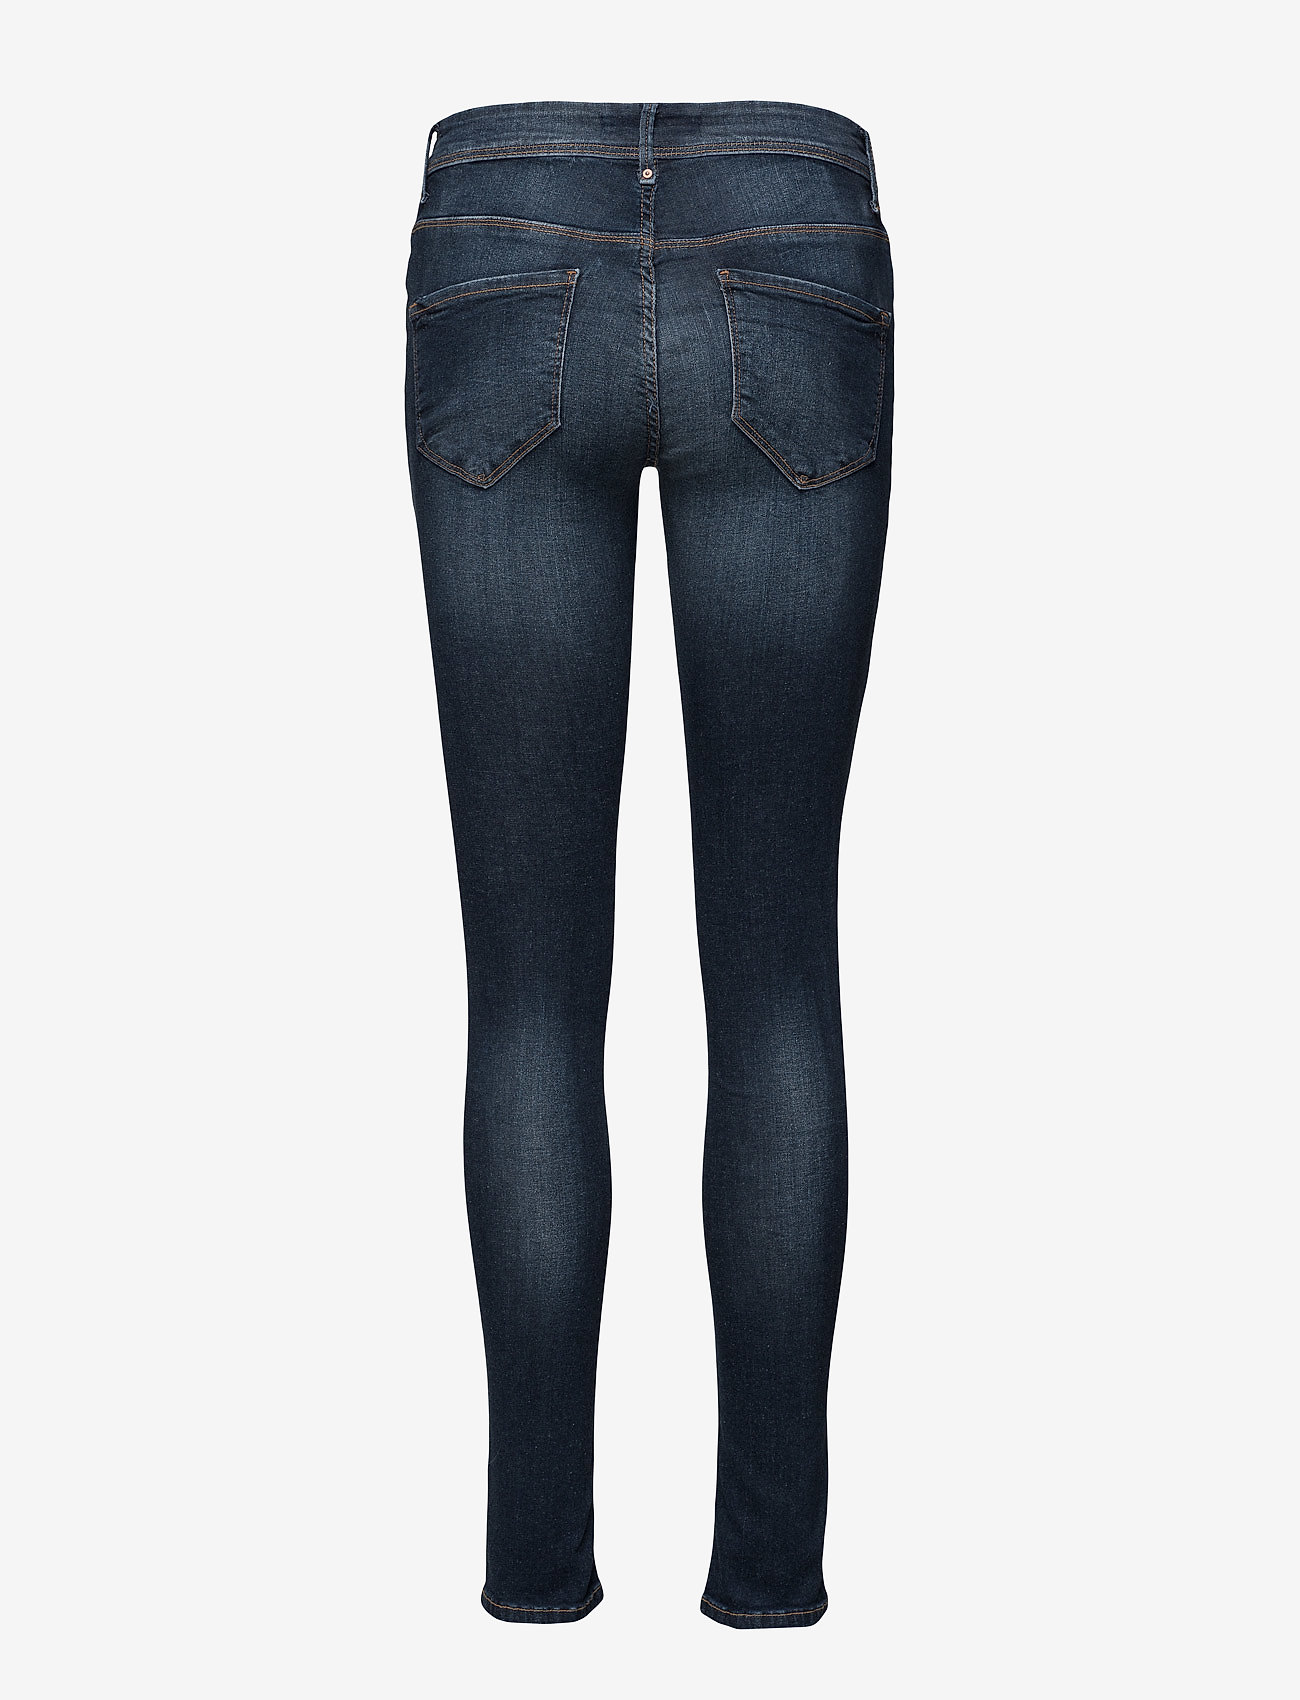 ICHI - IHERIN IZARO MEDIUM - skinny farkut - medium blue - 1